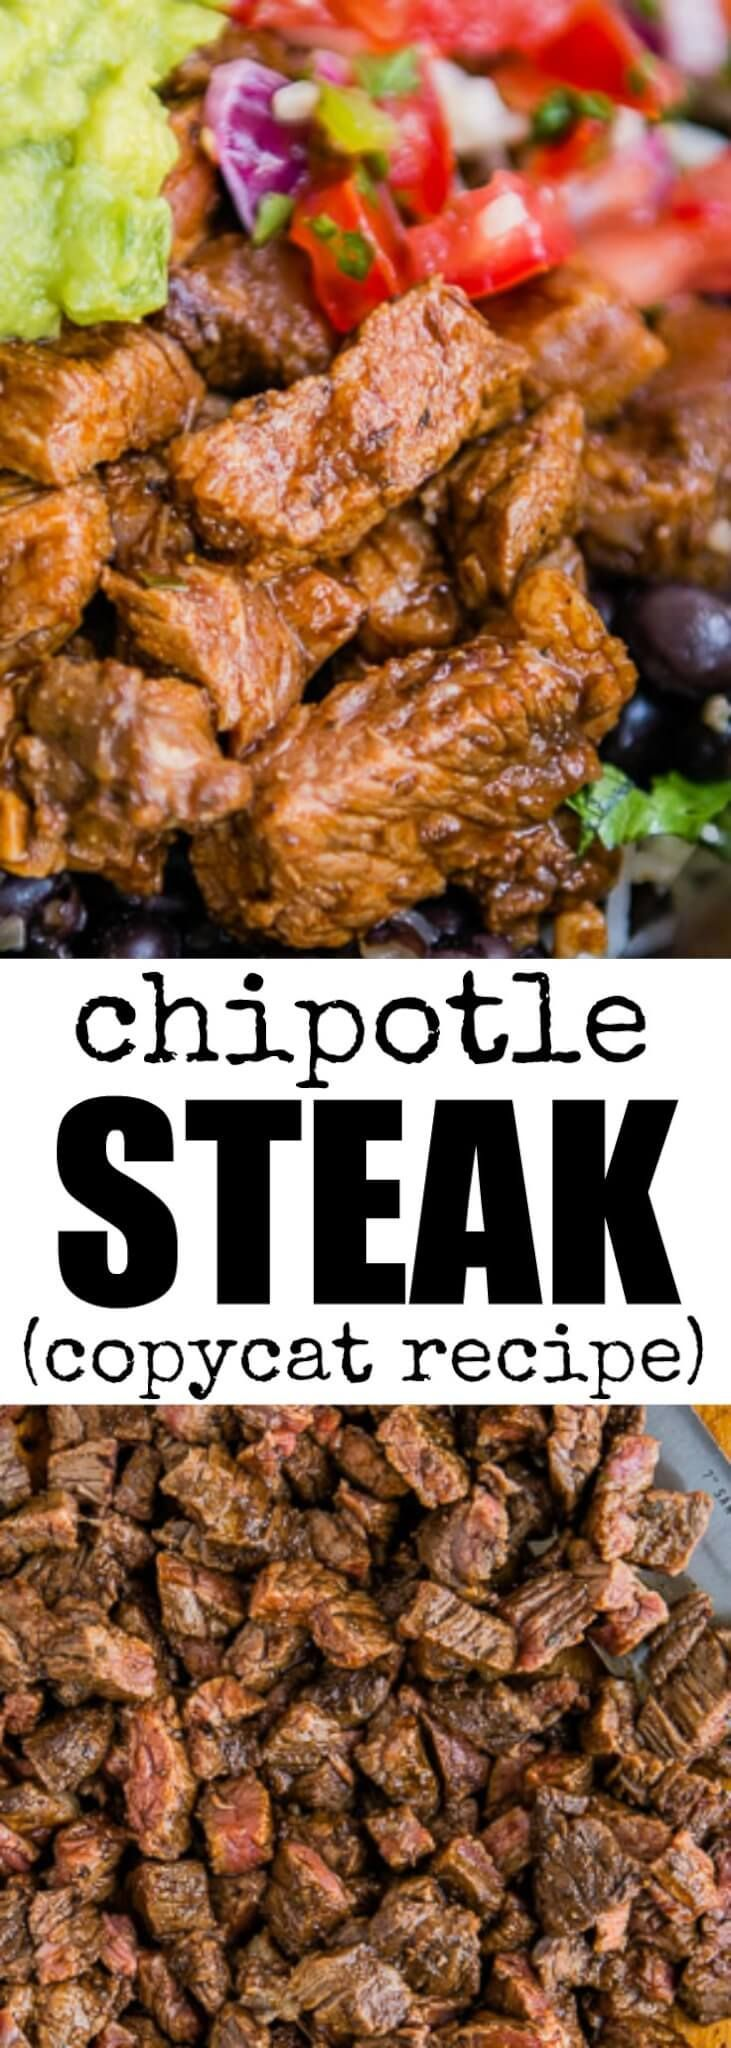 This copycat Chipotle Steak recipe tastes just like the real deal! You'll have 2 cups of marinade, enough for 10 pounds of steak. Freeze half for later! via @culinaryhill